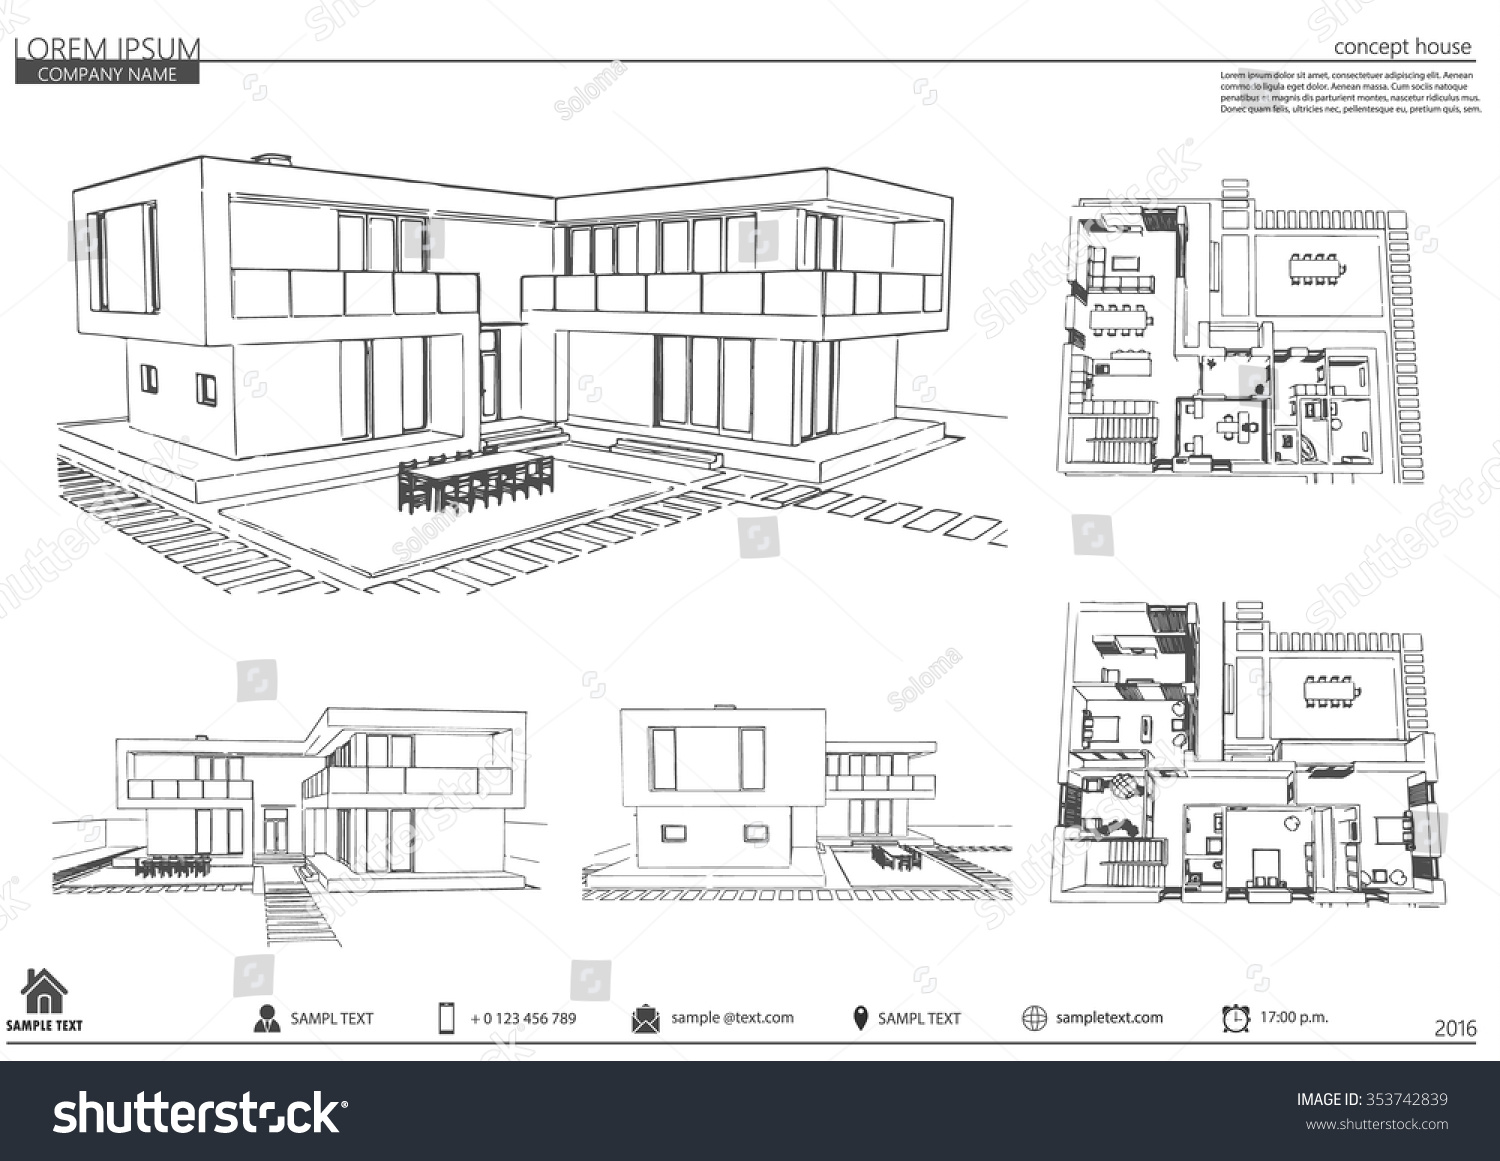 Wireframe blueprint drawing 3 d building vector stock vector wireframe blueprint drawing of 3d building vector architectural template background malvernweather Gallery